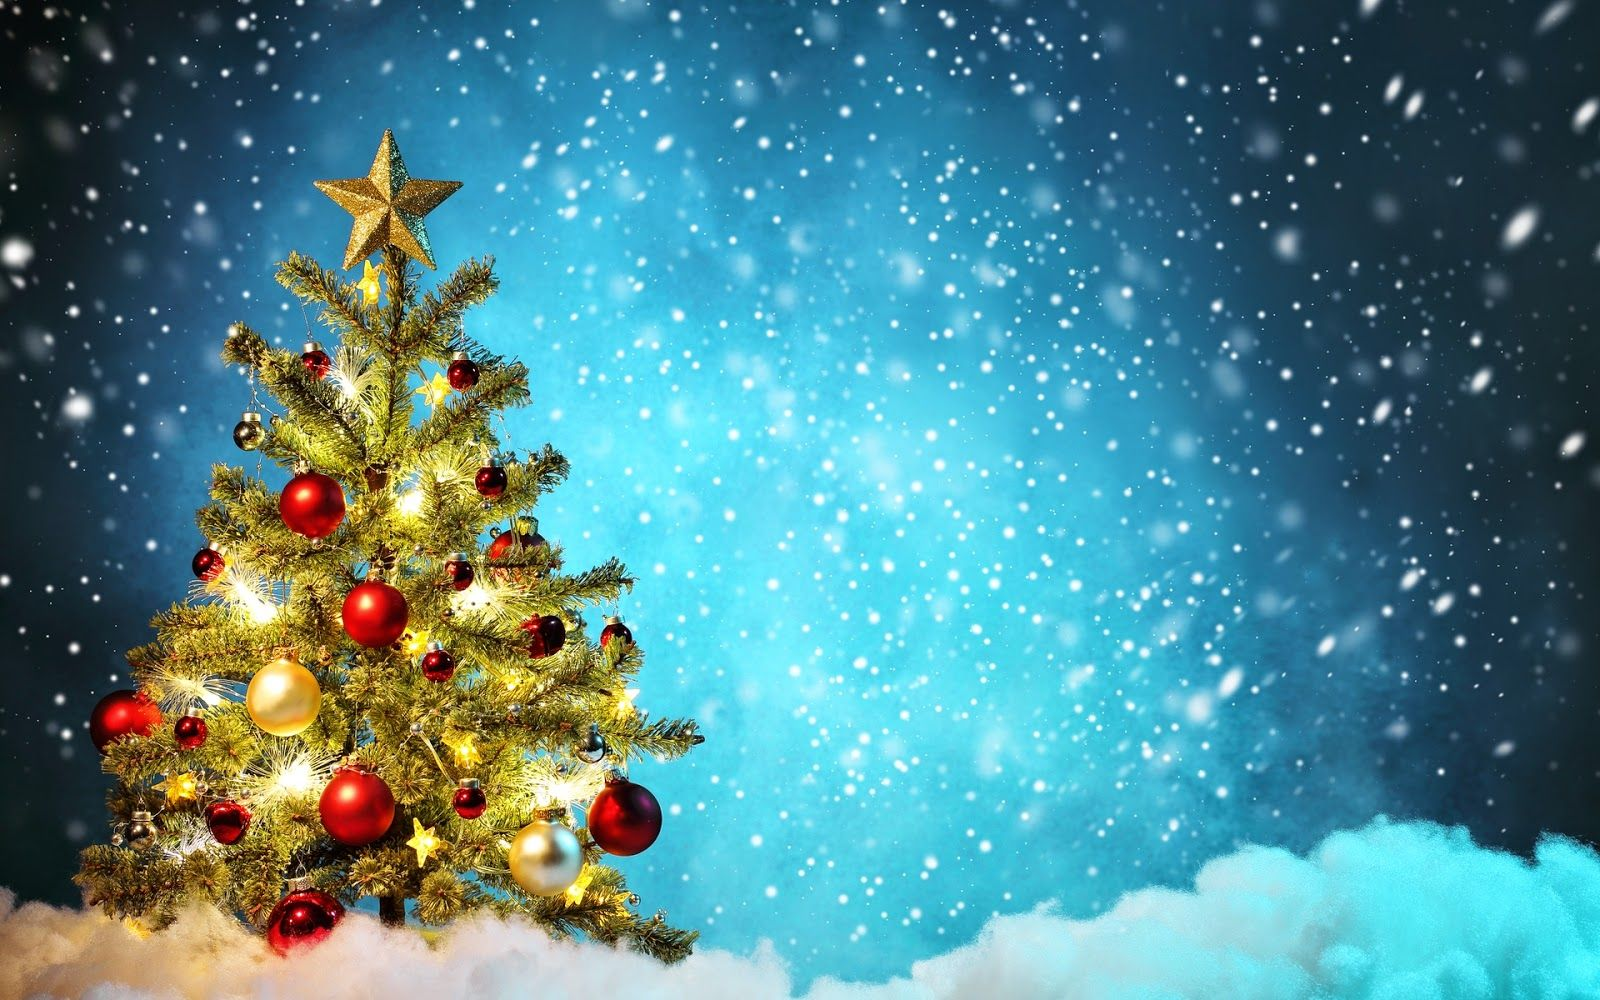 Merry Christmas Pictures Christmas Tree Wallpaper Christmas Wallpaper Free Christmas Wallpaper Hd